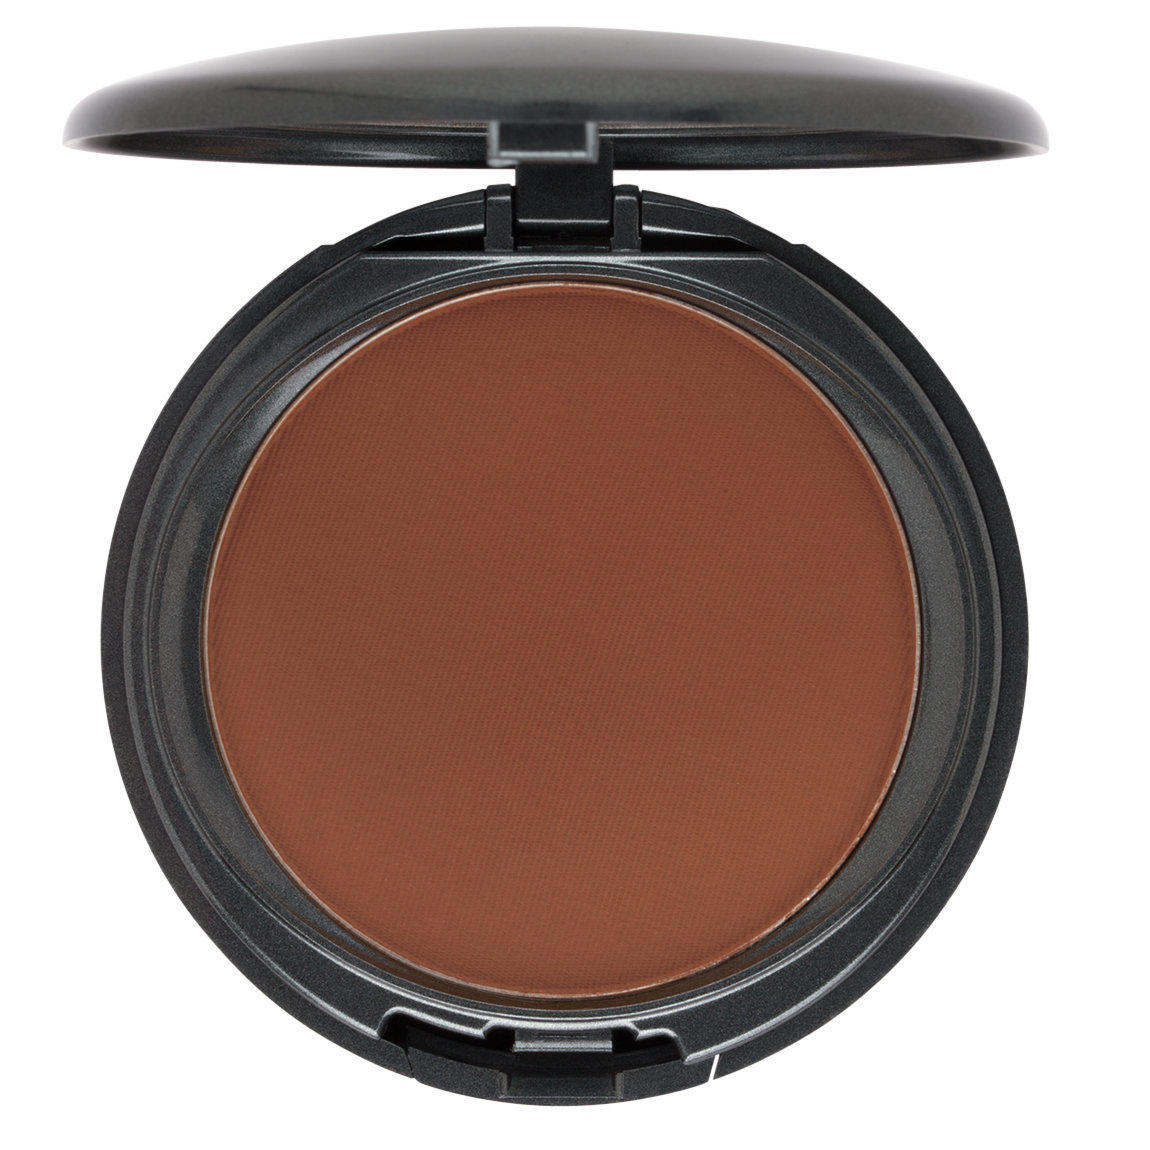 Cover FX Pressed Mineral Foundation P120